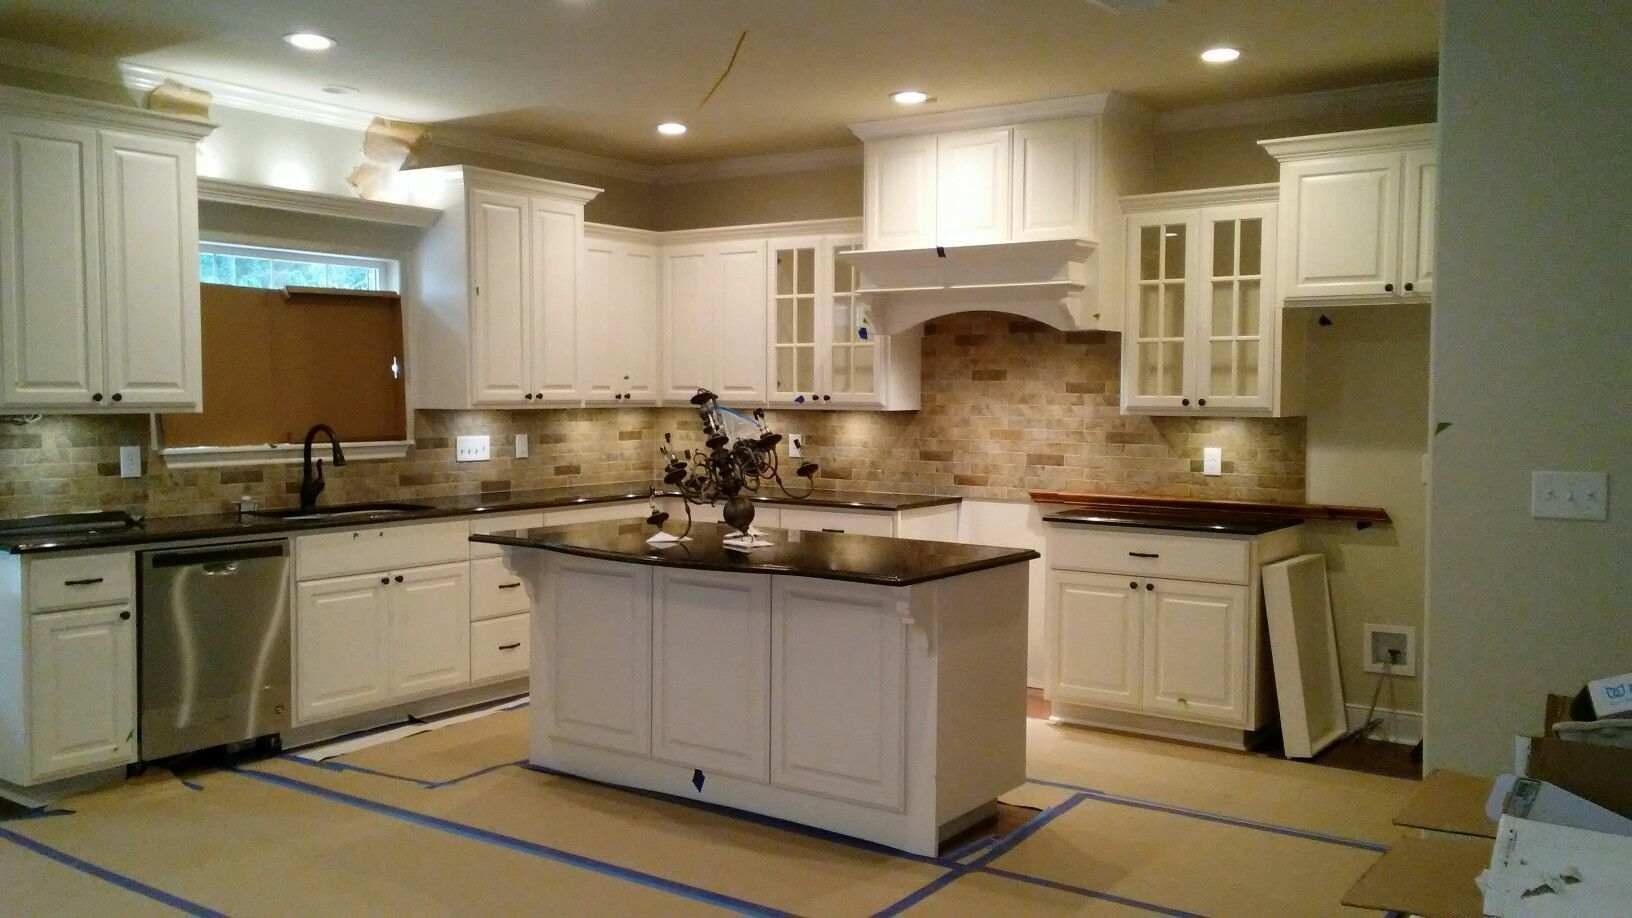 Sw Dover White Cabinets New Ubatuba Gold Fleck Granite Marizzi Paver Backsplash Hickory Floori White Cabinets With Granite Kitchen Remodel Country Kitchen